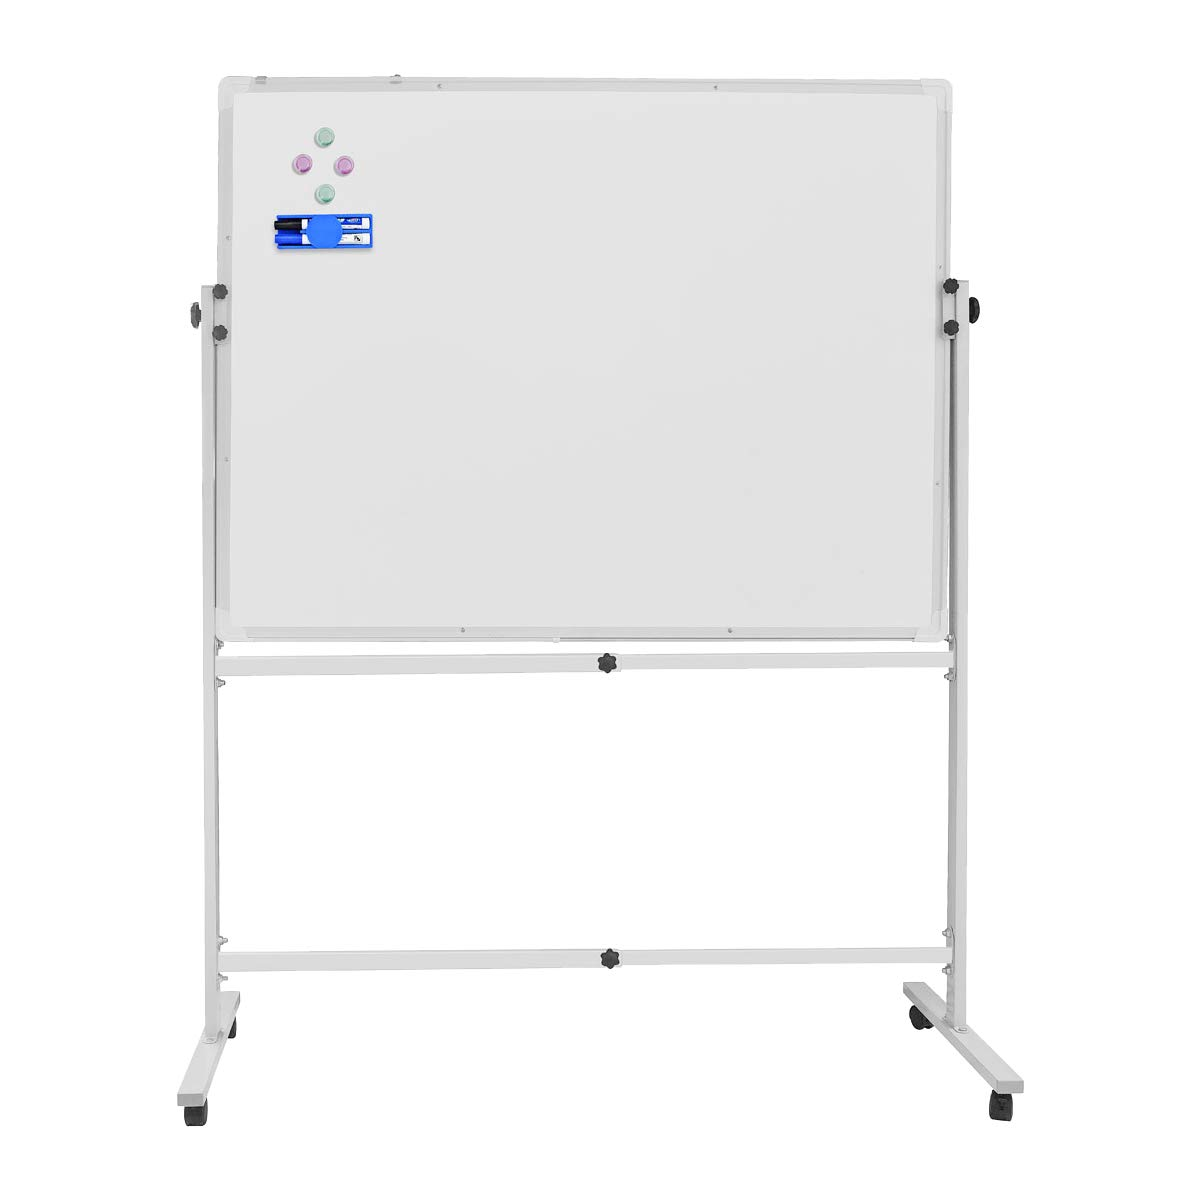 Mobile Whiteboard Dry Erase Board With Rolling Stand for Office/Home/School Presentation Whiteboard including 1 Eraser, 2 Markers and 4 Magnetic Nails (48'' X 36'')